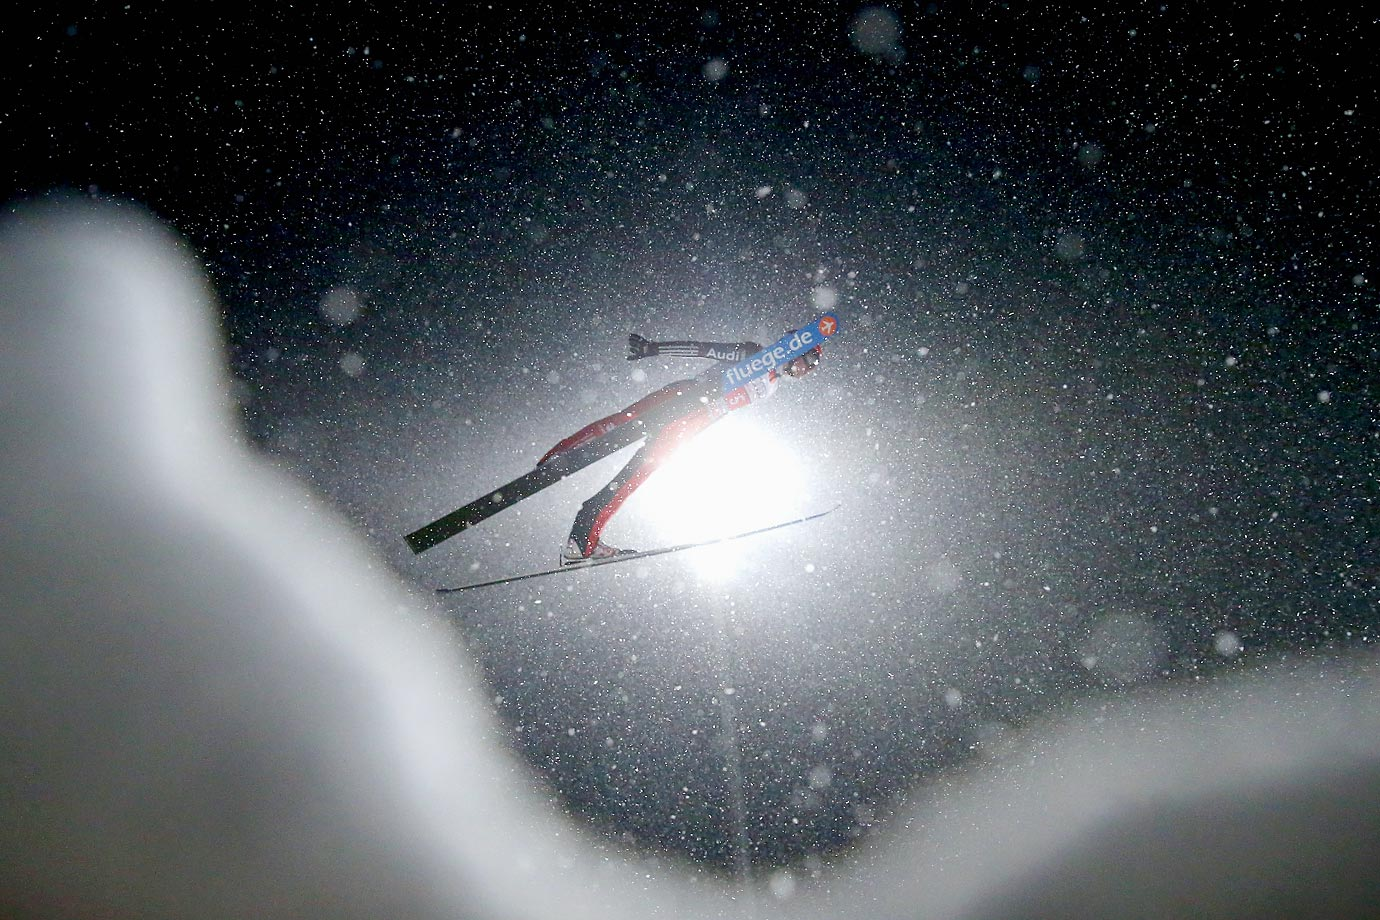 Richard Freitag of Germany competes in the Four Hills Tournament Ski Jumping event at Schattenberg-Schanze Erdinger Arena in Oberstdorf, Germany.